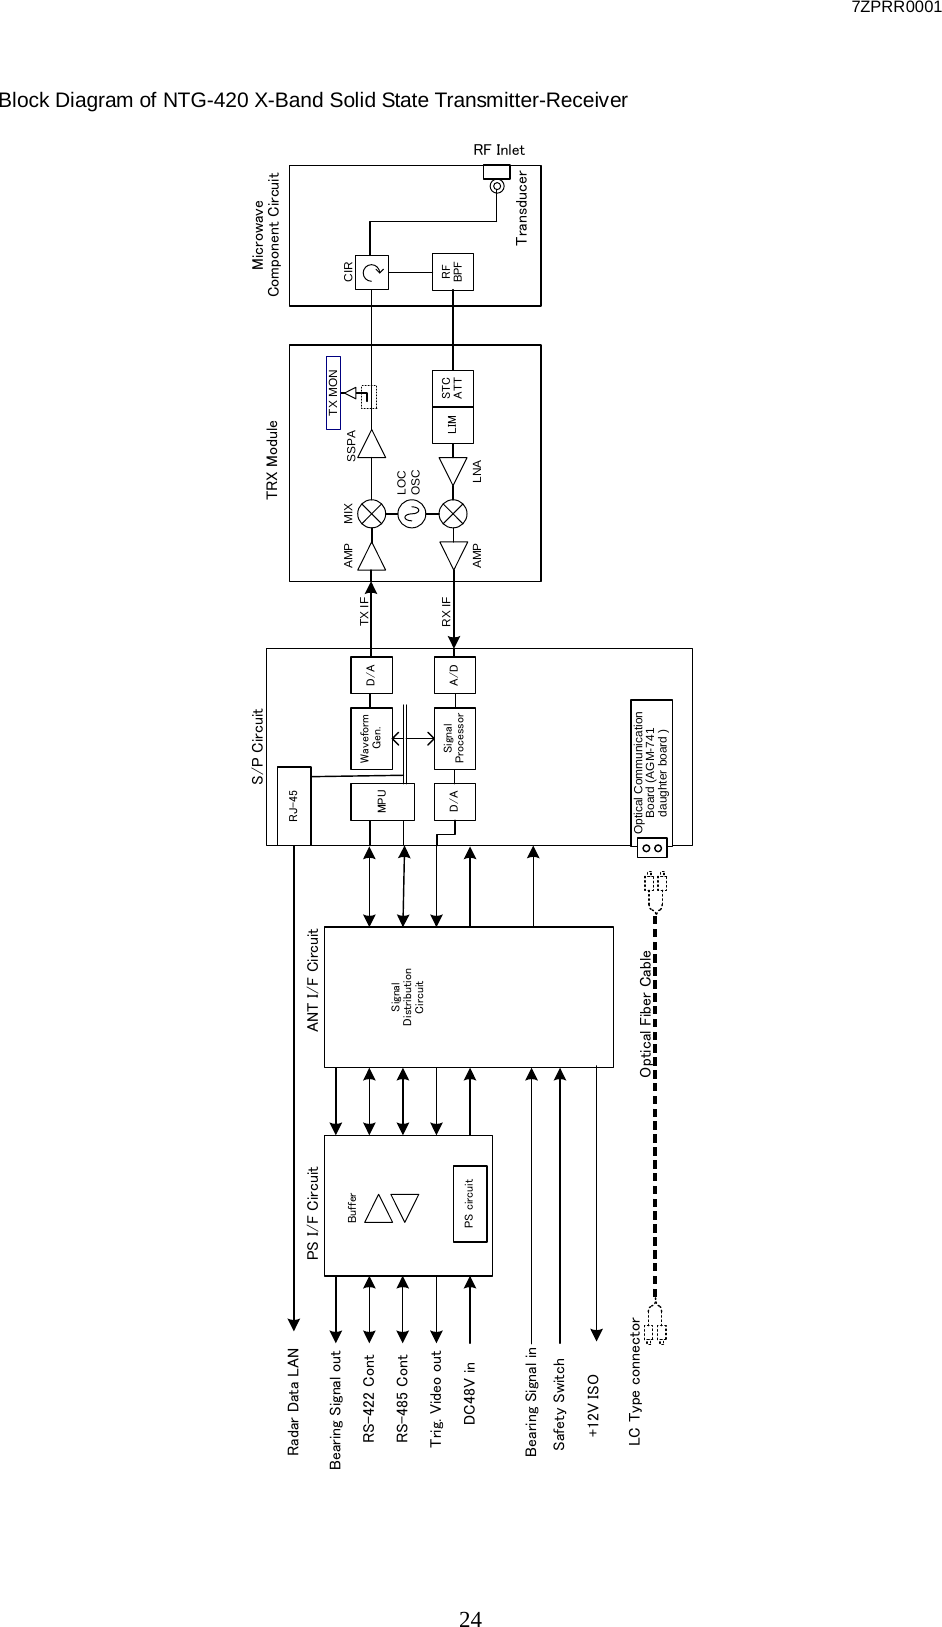 Japan Radio Co Ntg420 Solid State Transmitter Receiver User Manual Block Diagram Of 7zprr0001 24 Ntg 420 X Band